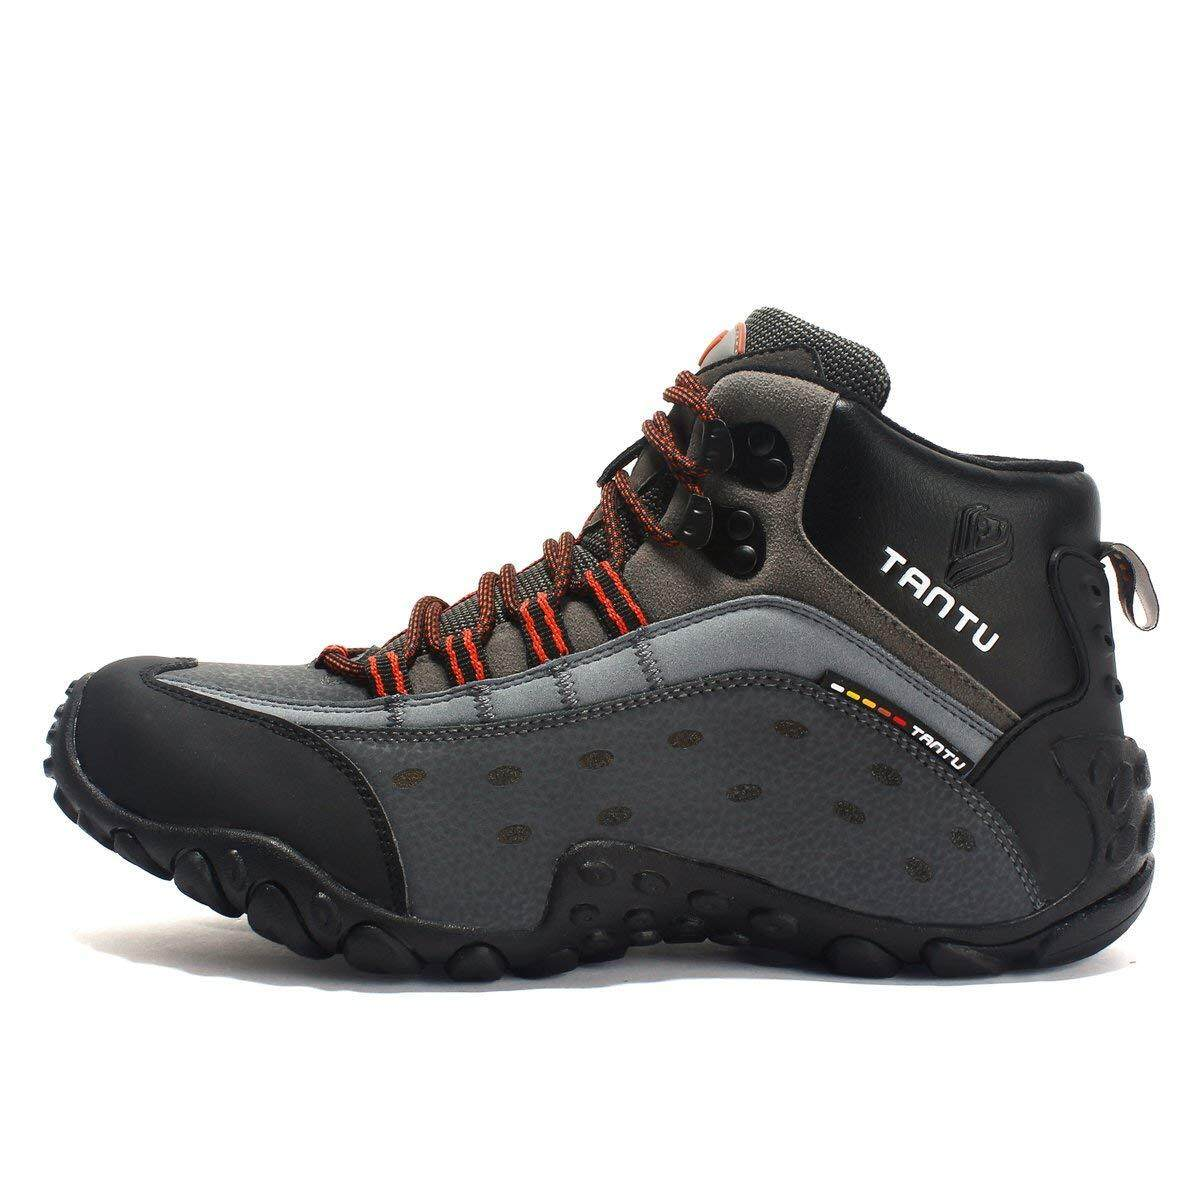 4303ce9d470 SANANG Men Outdoor Waterproof Hiking Boots Tourist Trekking Shoes